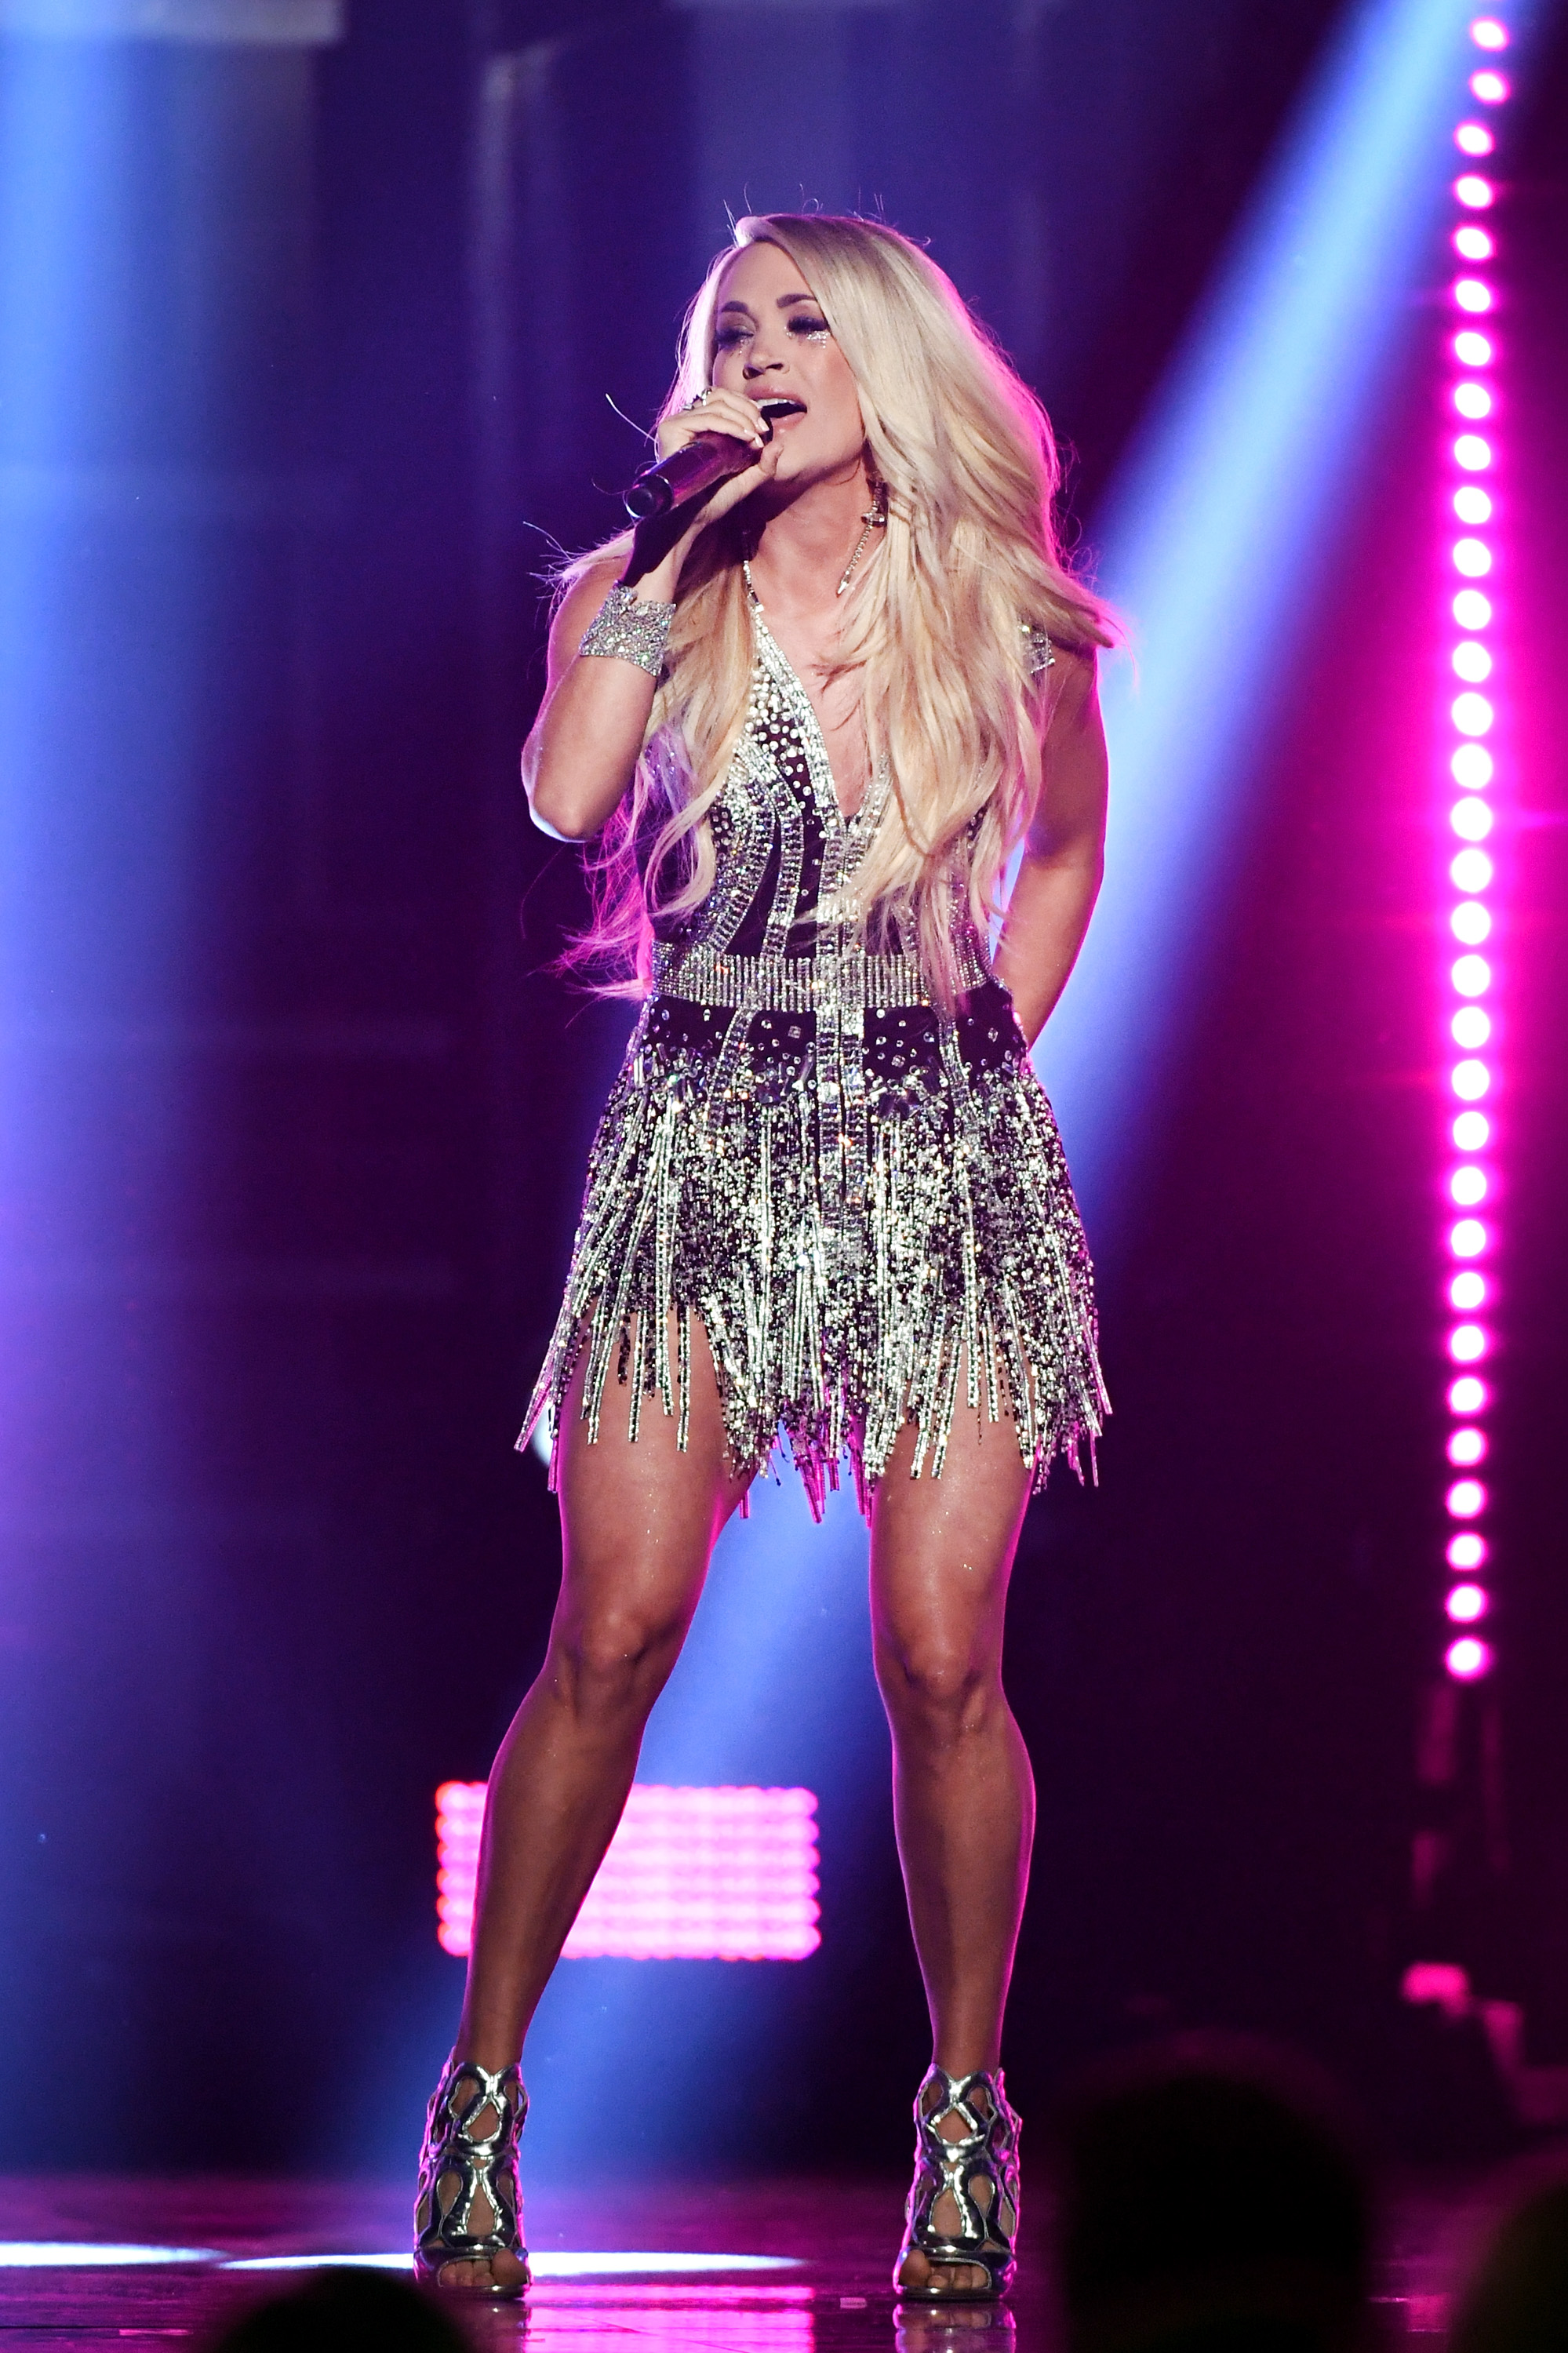 714d595ec67 Carrie Underwood s Video For  Cry Pretty  Is A Sad Look Into The Pressures  Of Fame